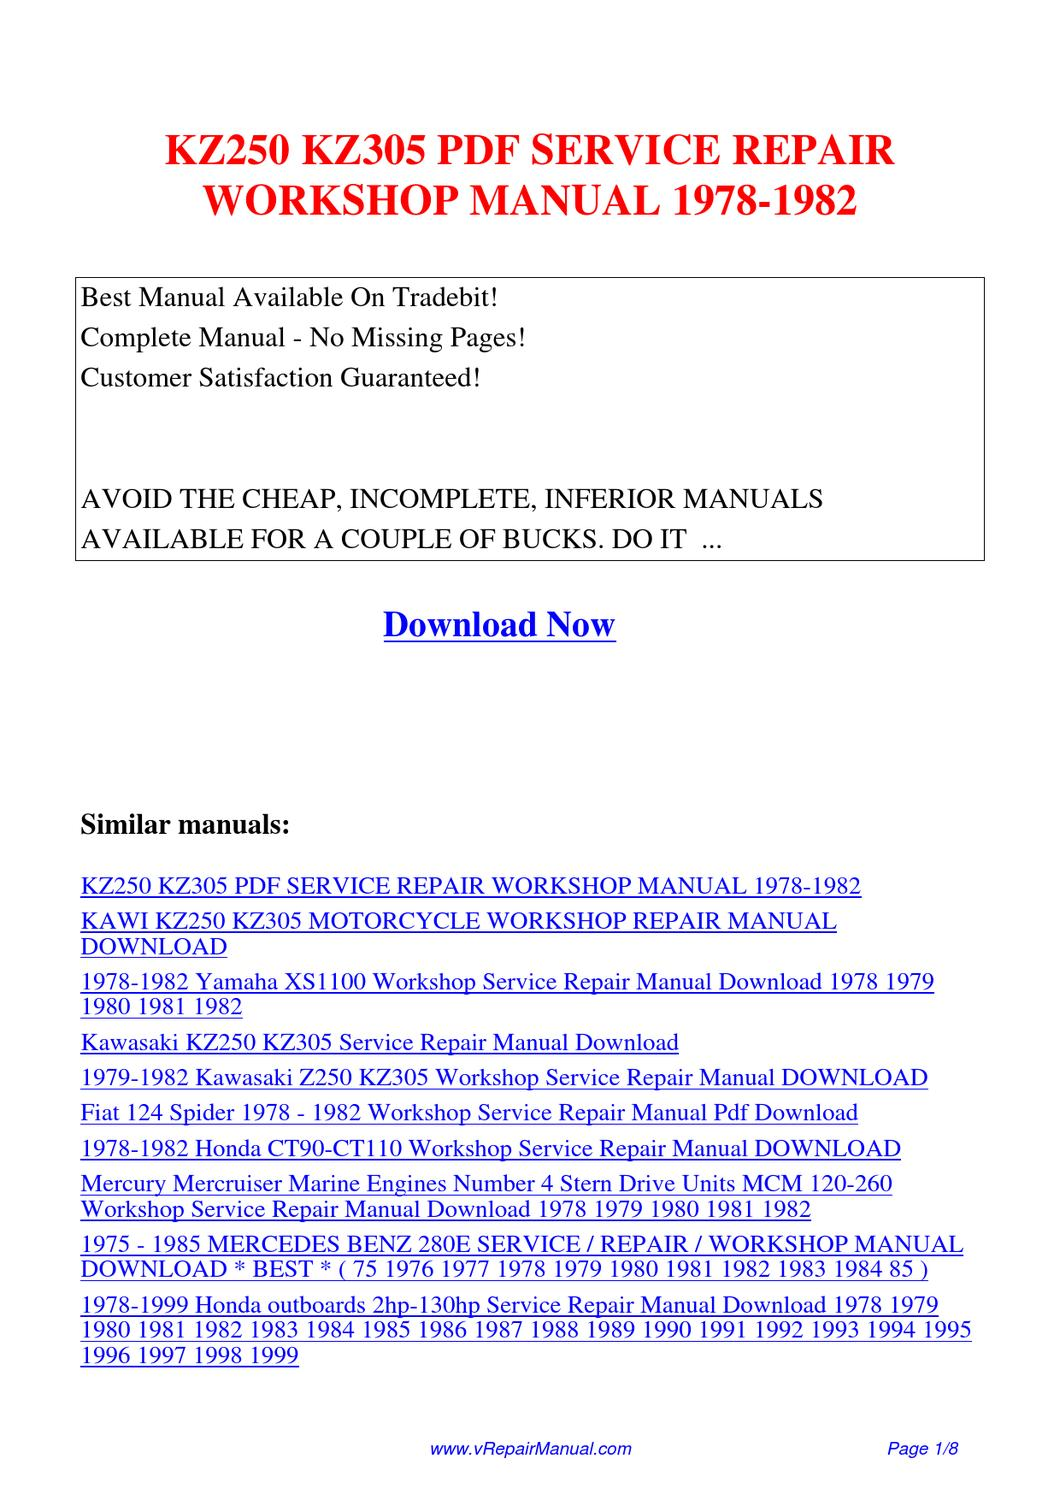 hyundai 20df 25df 30df 33df forklift truck workshop service repair manual download